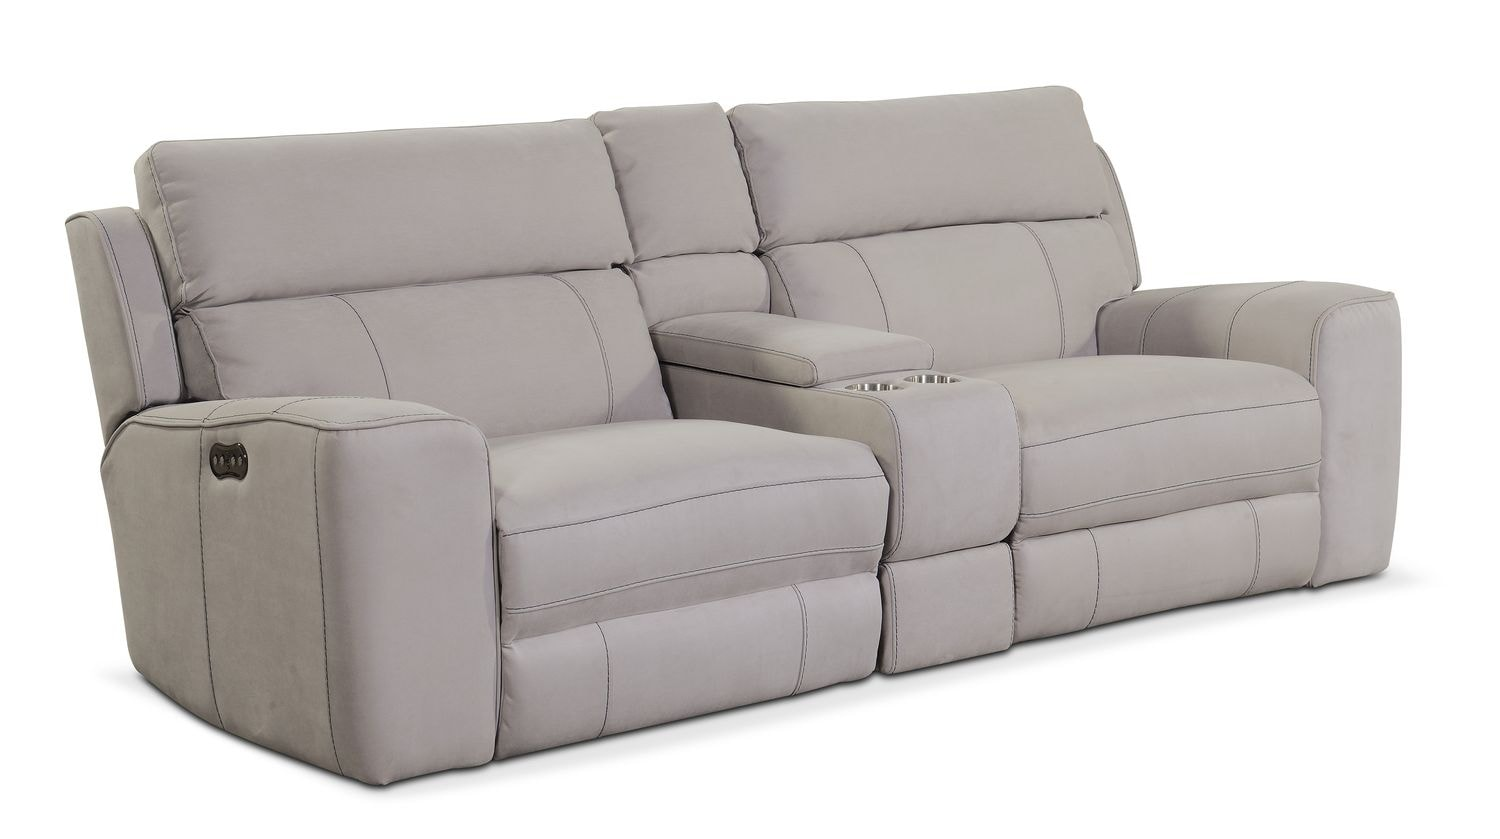 Newport 3-Piece Power Reclining Sofa With Console